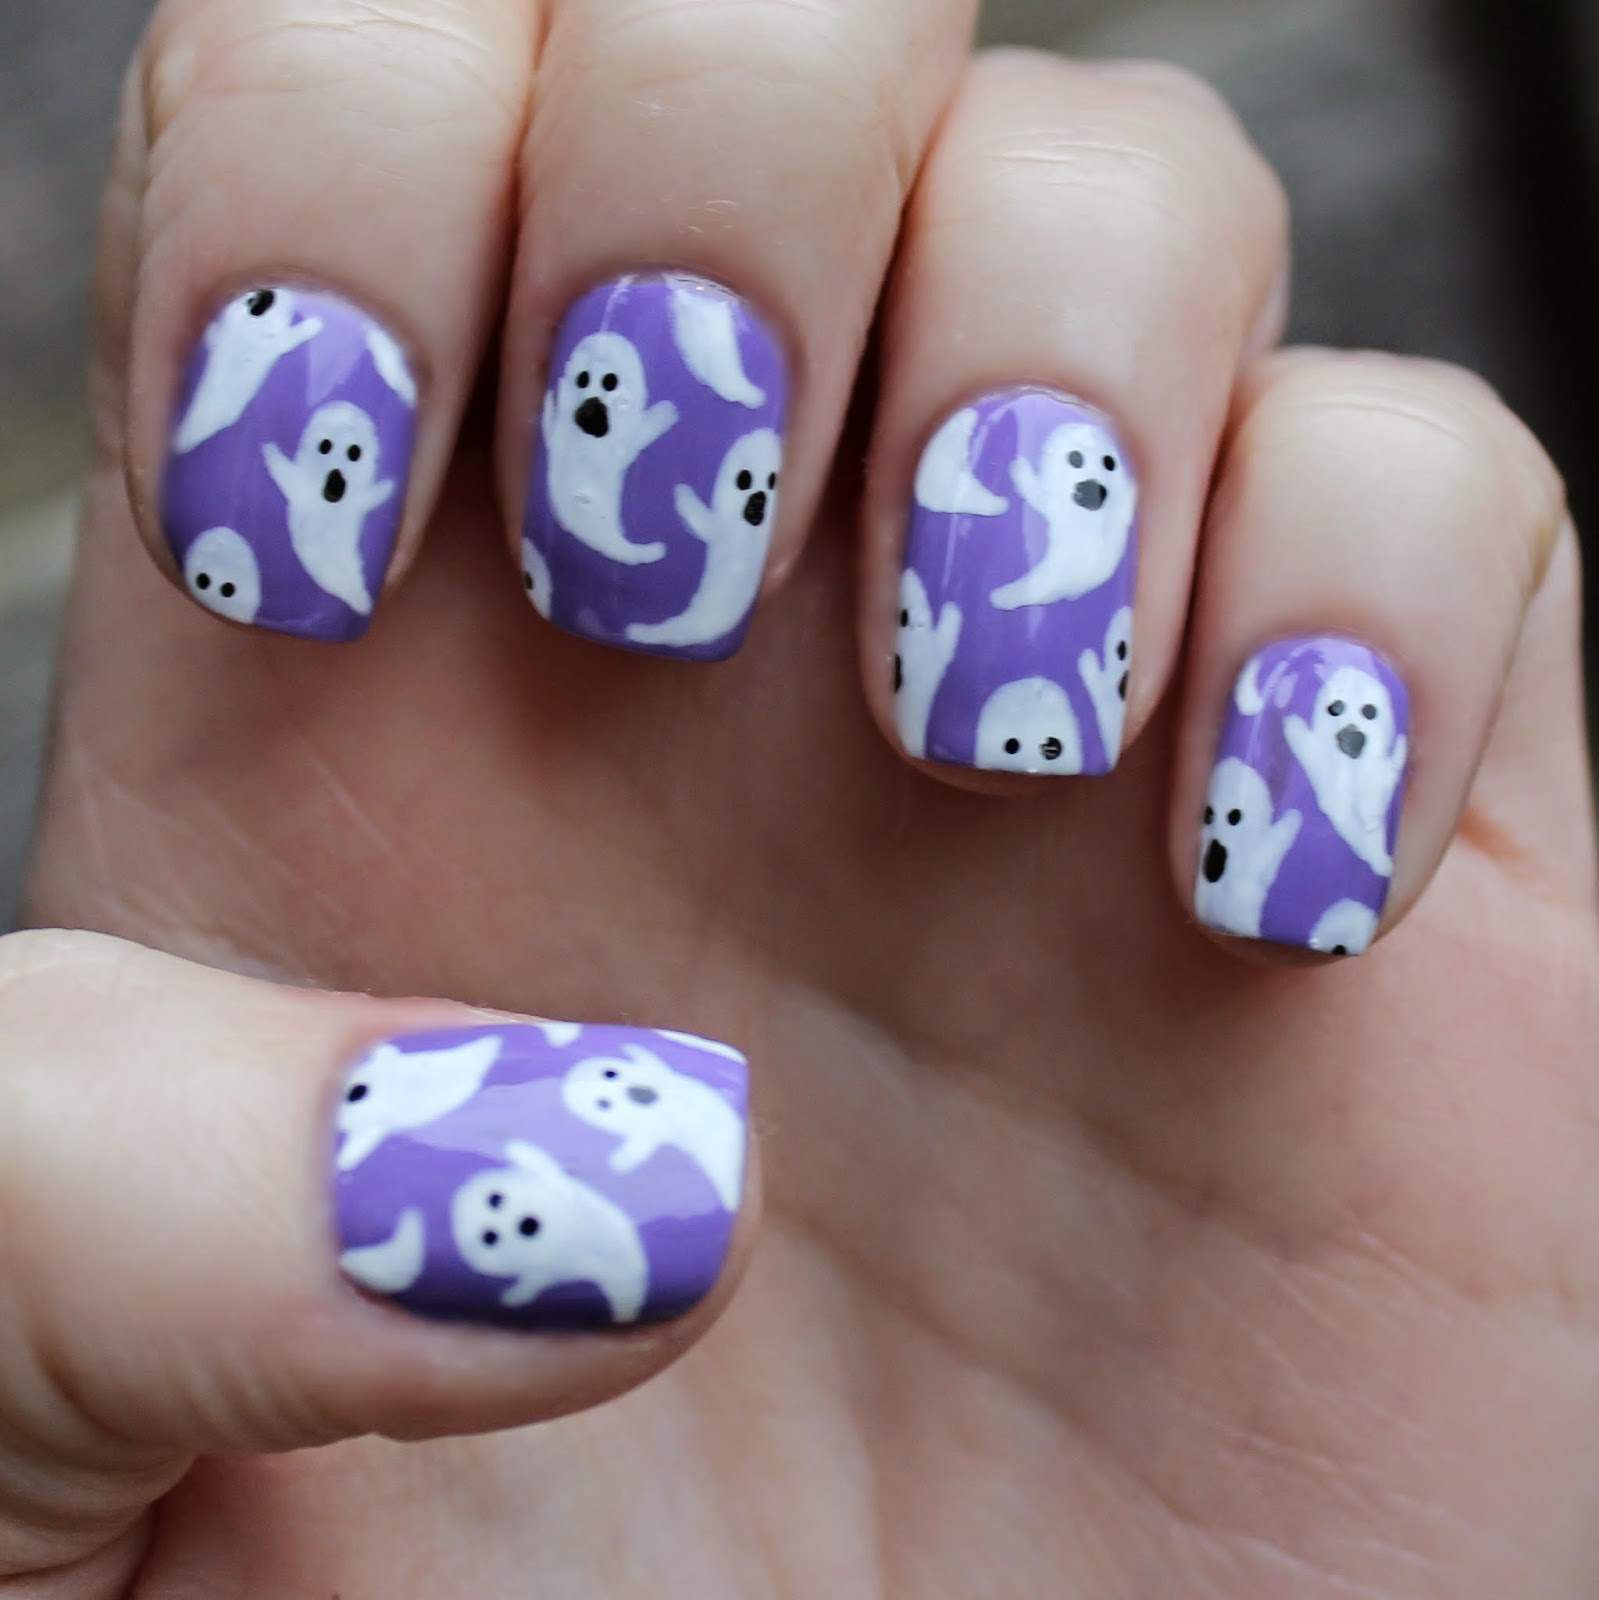 Dahlia Nails Cute Ghost Nails For Halloween